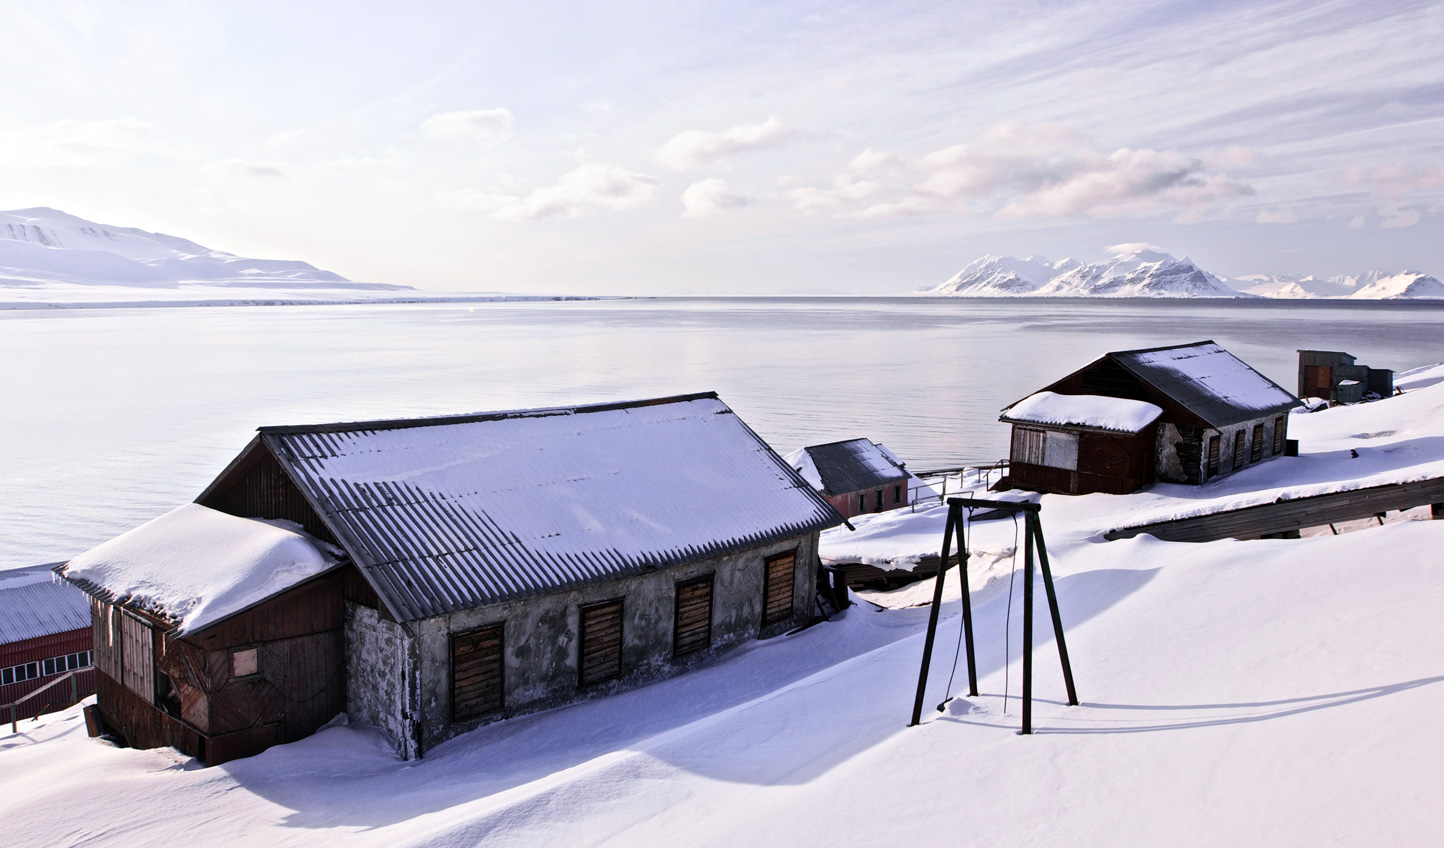 Swing by the Russian settlement at Barentsburg